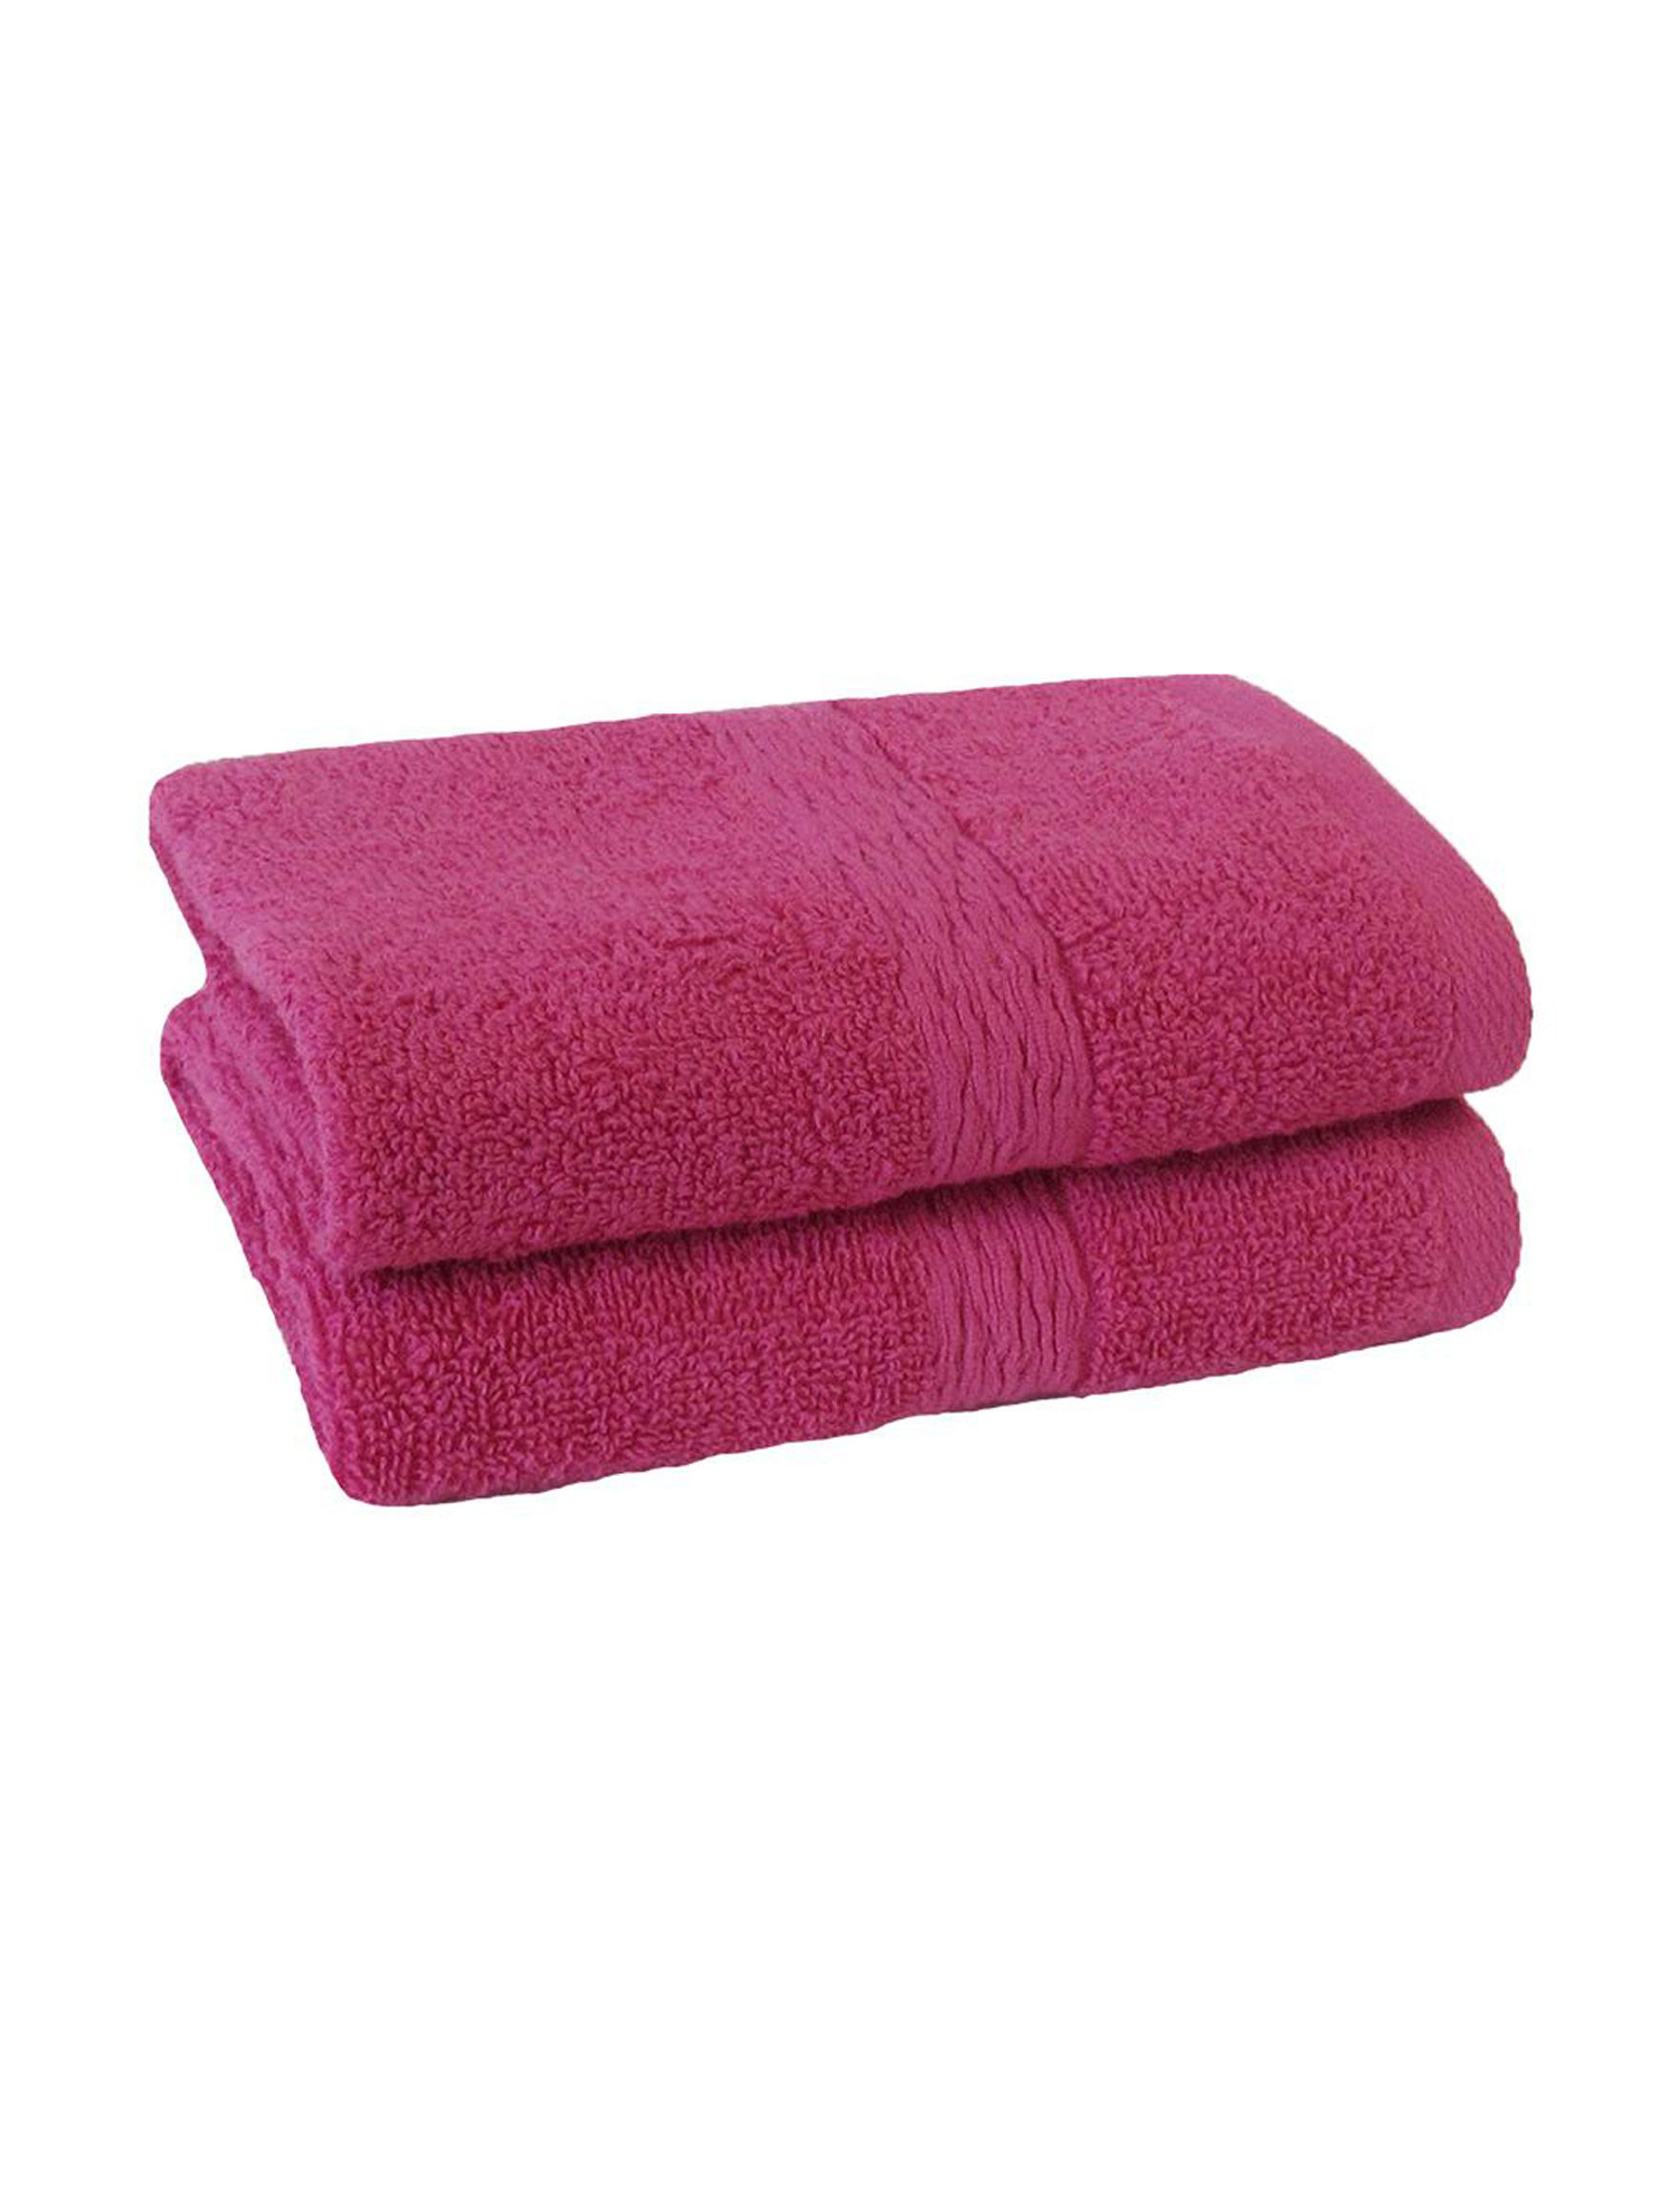 Jessica Simpson Pink Bath Towels